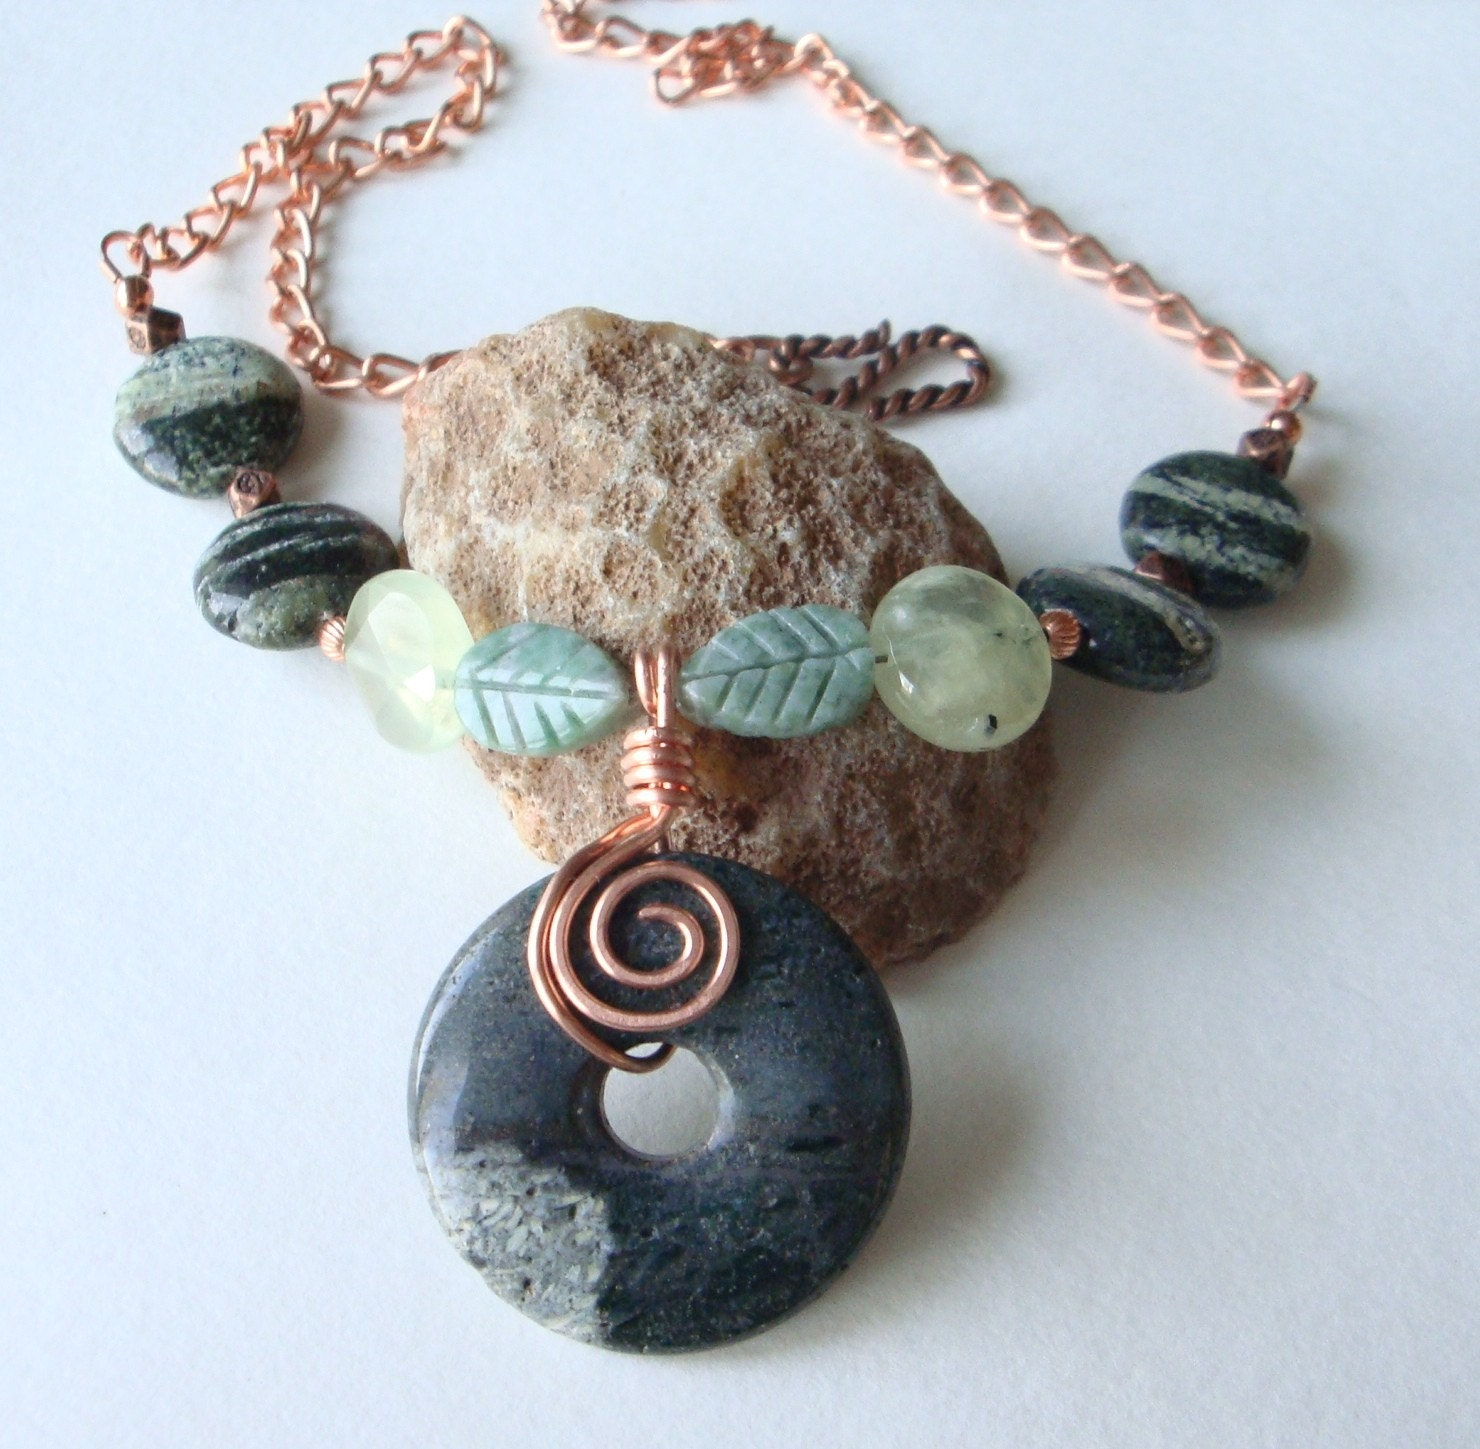 Green Zebra Jasper, Prehnite, China Jade, and Copper Necklace